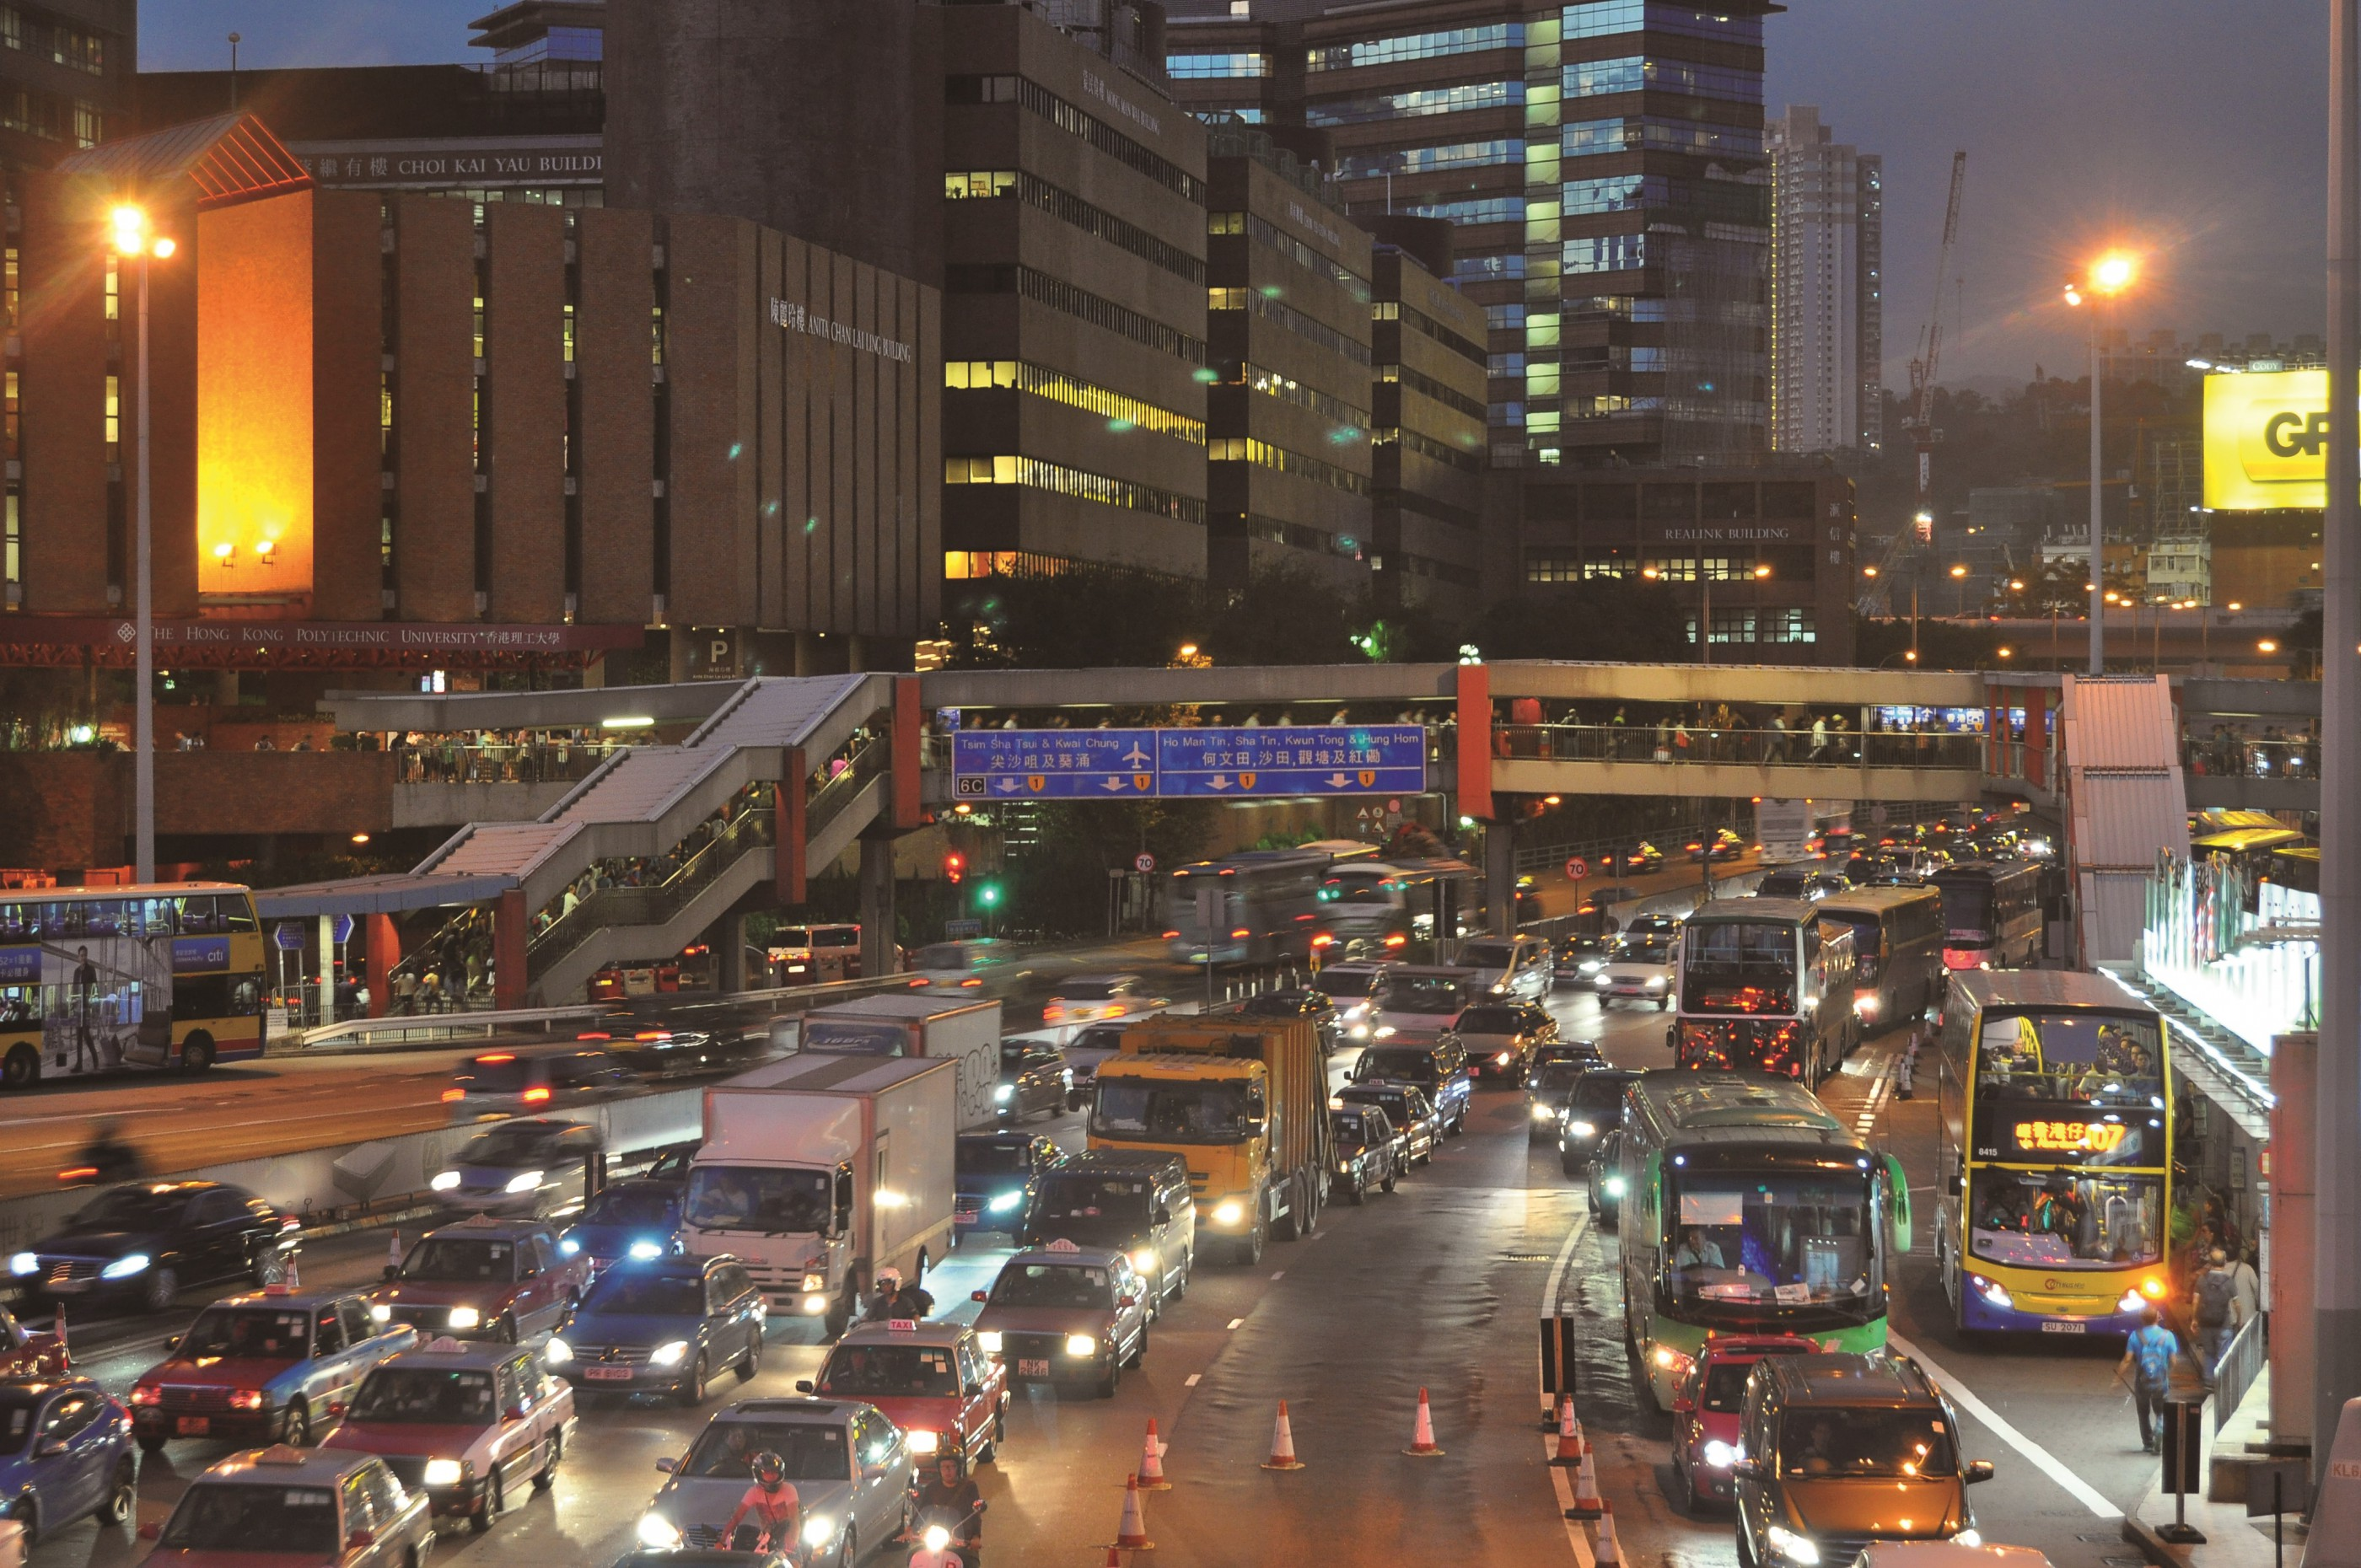 Hong Kong transport slowing down, less efficient